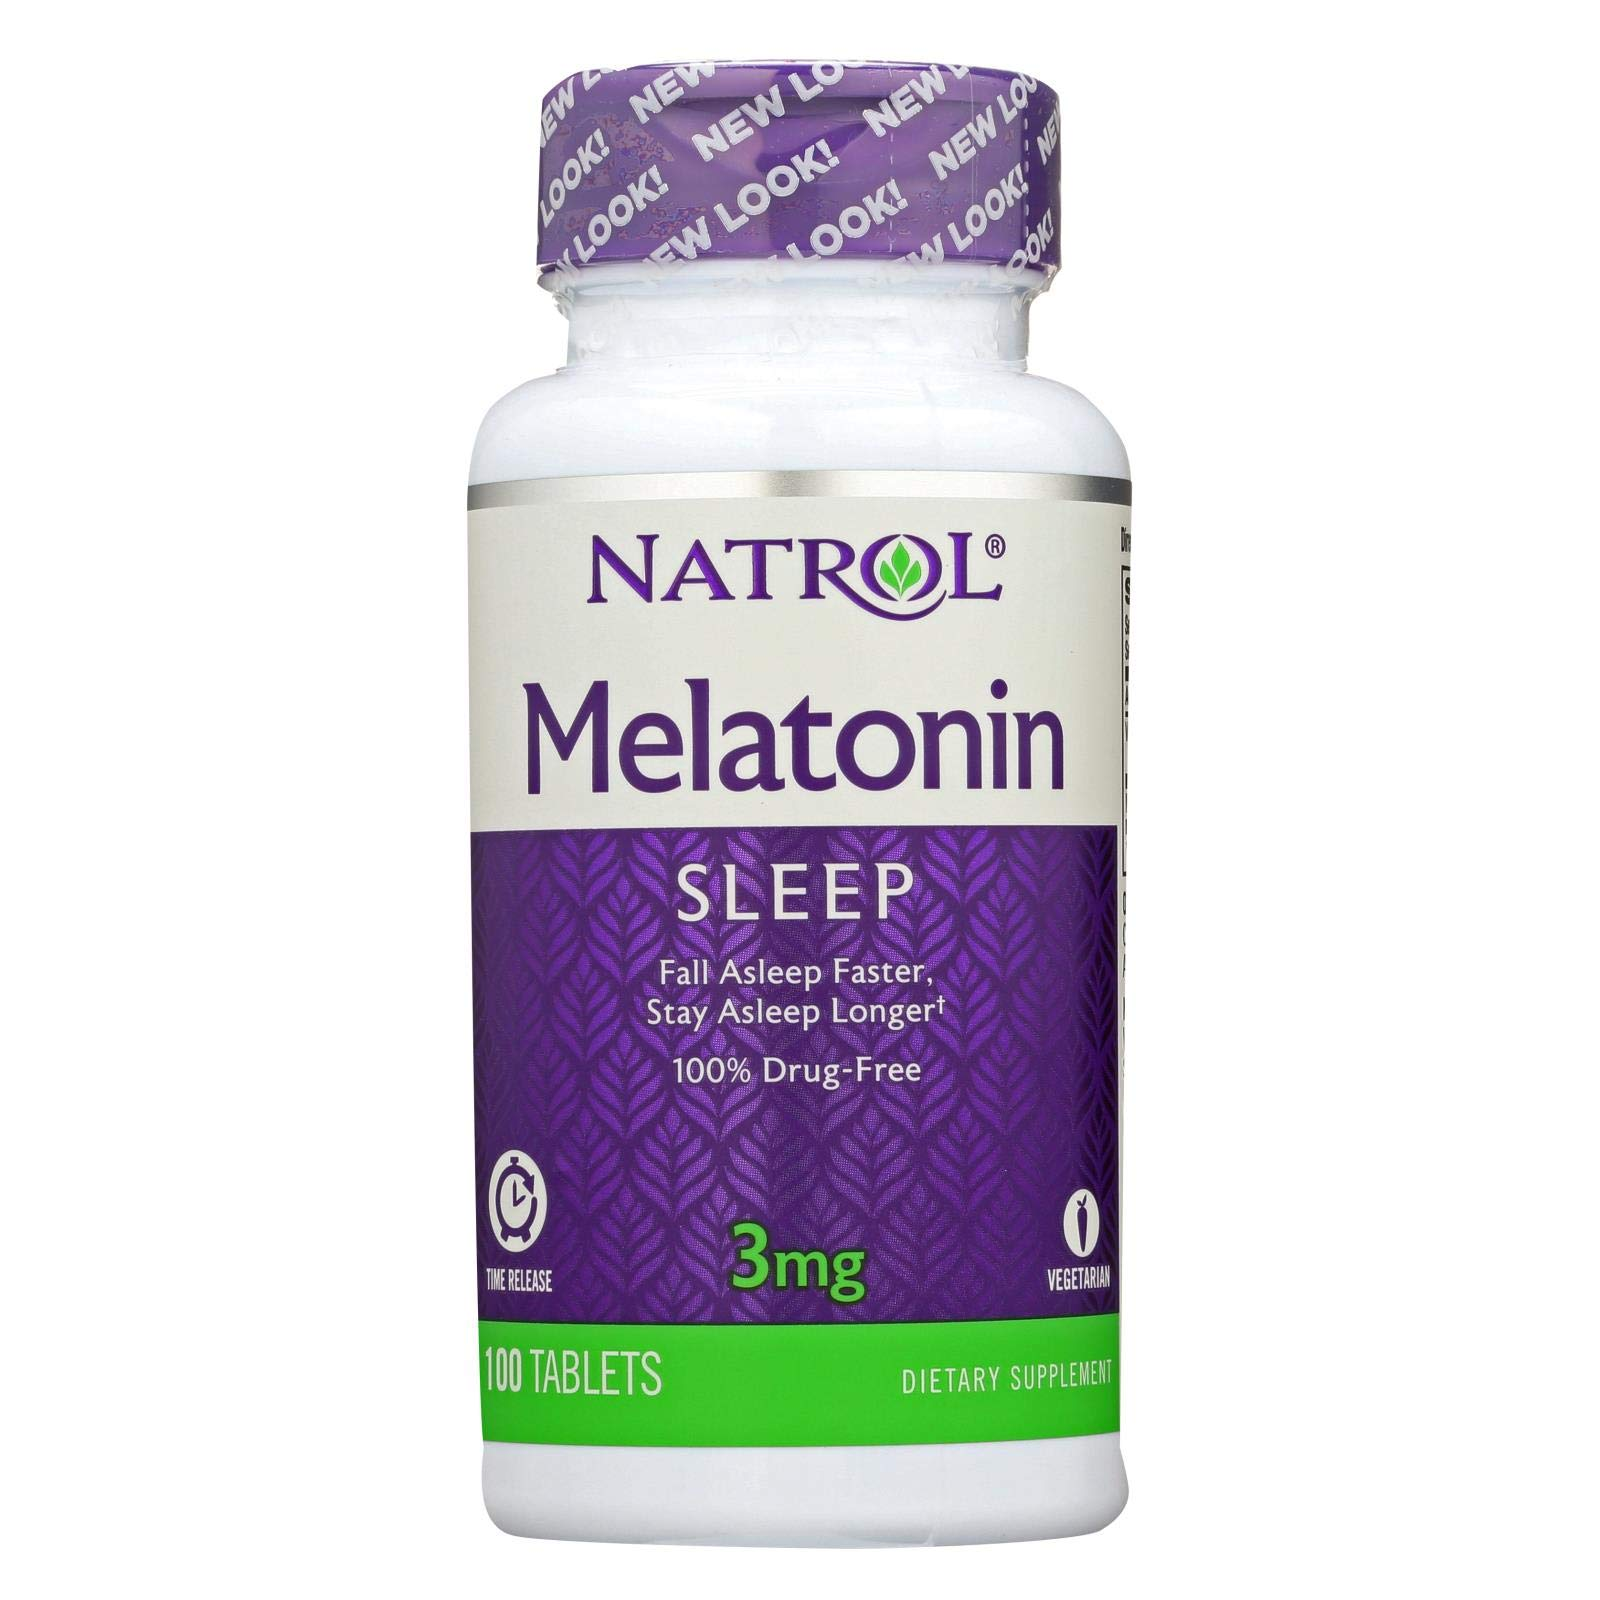 Amazon.com: Natrol Melatonin Time Release - 3 mg - 100 Tablets: Health & Personal Care